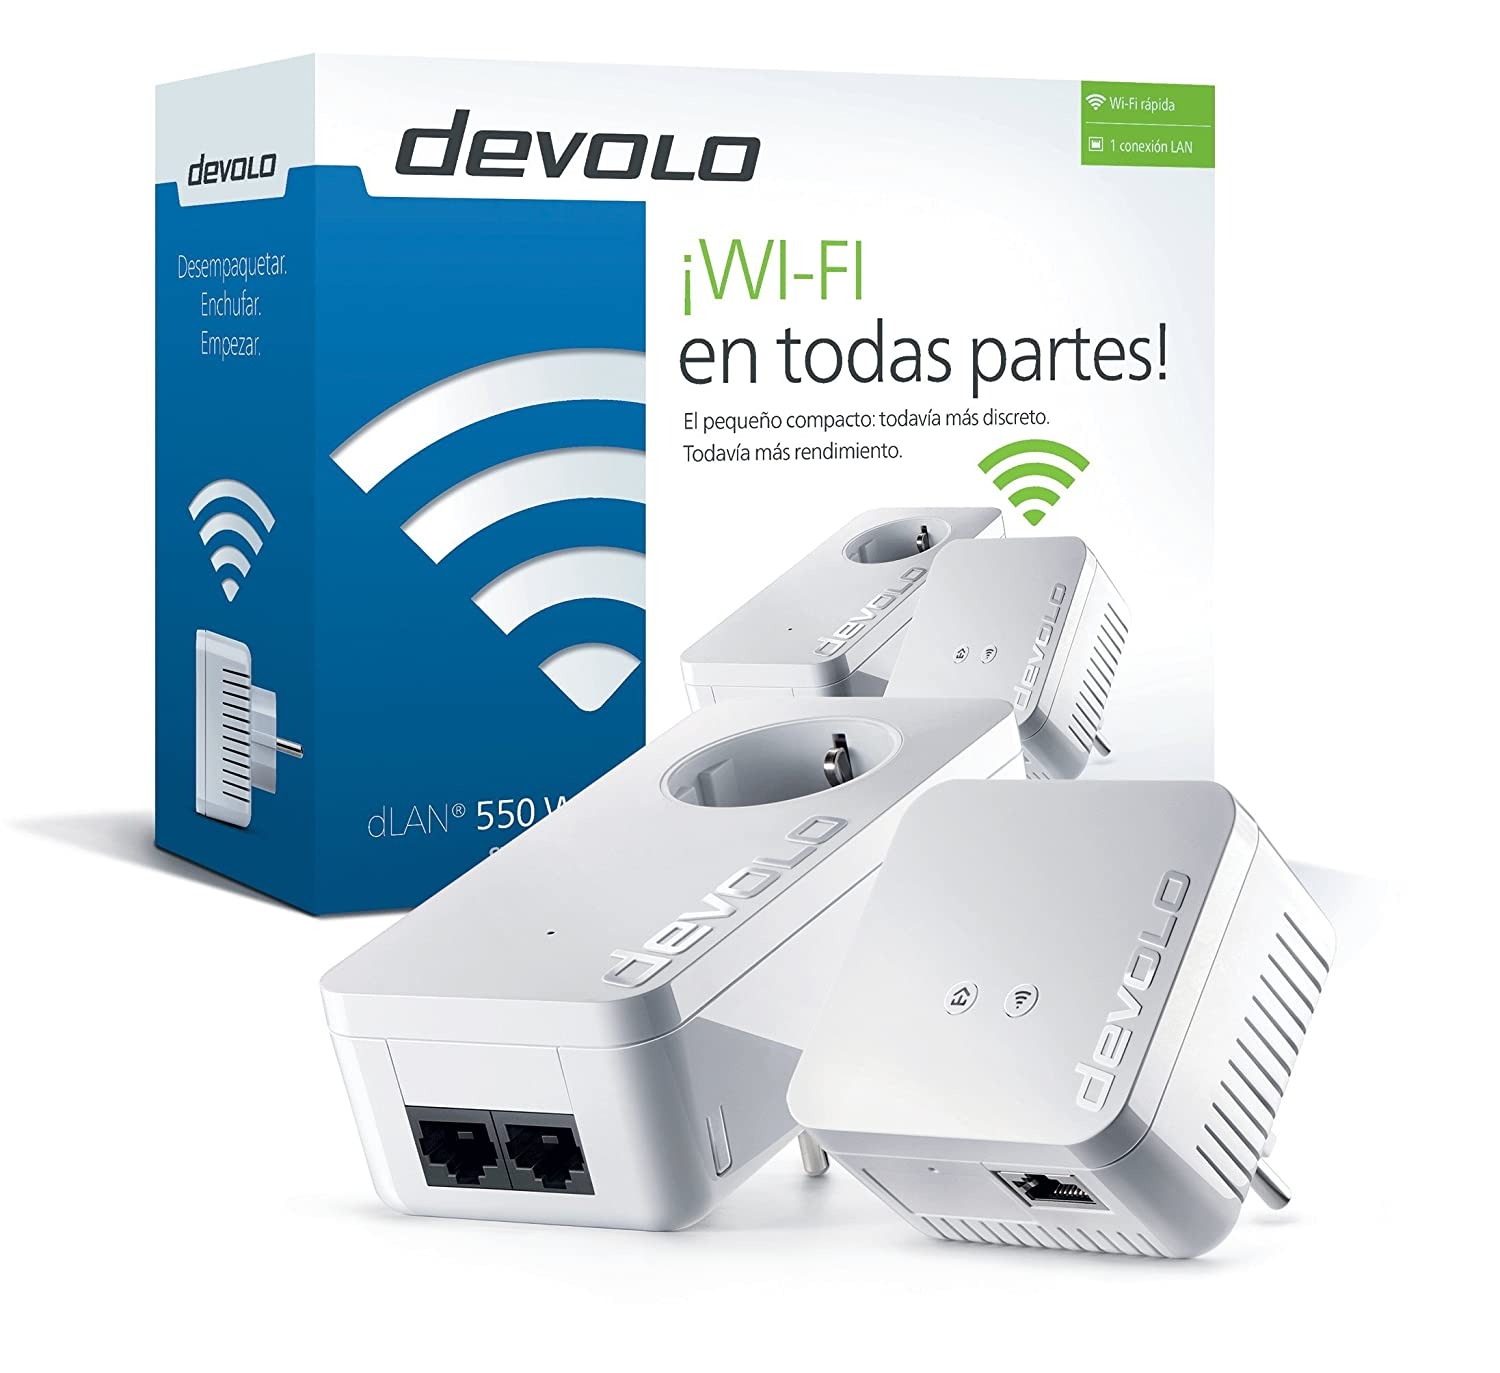 Devolo dLAN 550 WiFi - Kit de inicio PLC Powerline (500 Mbps, 2 x adaptadores, 2 x puertos LAN, enchufe...